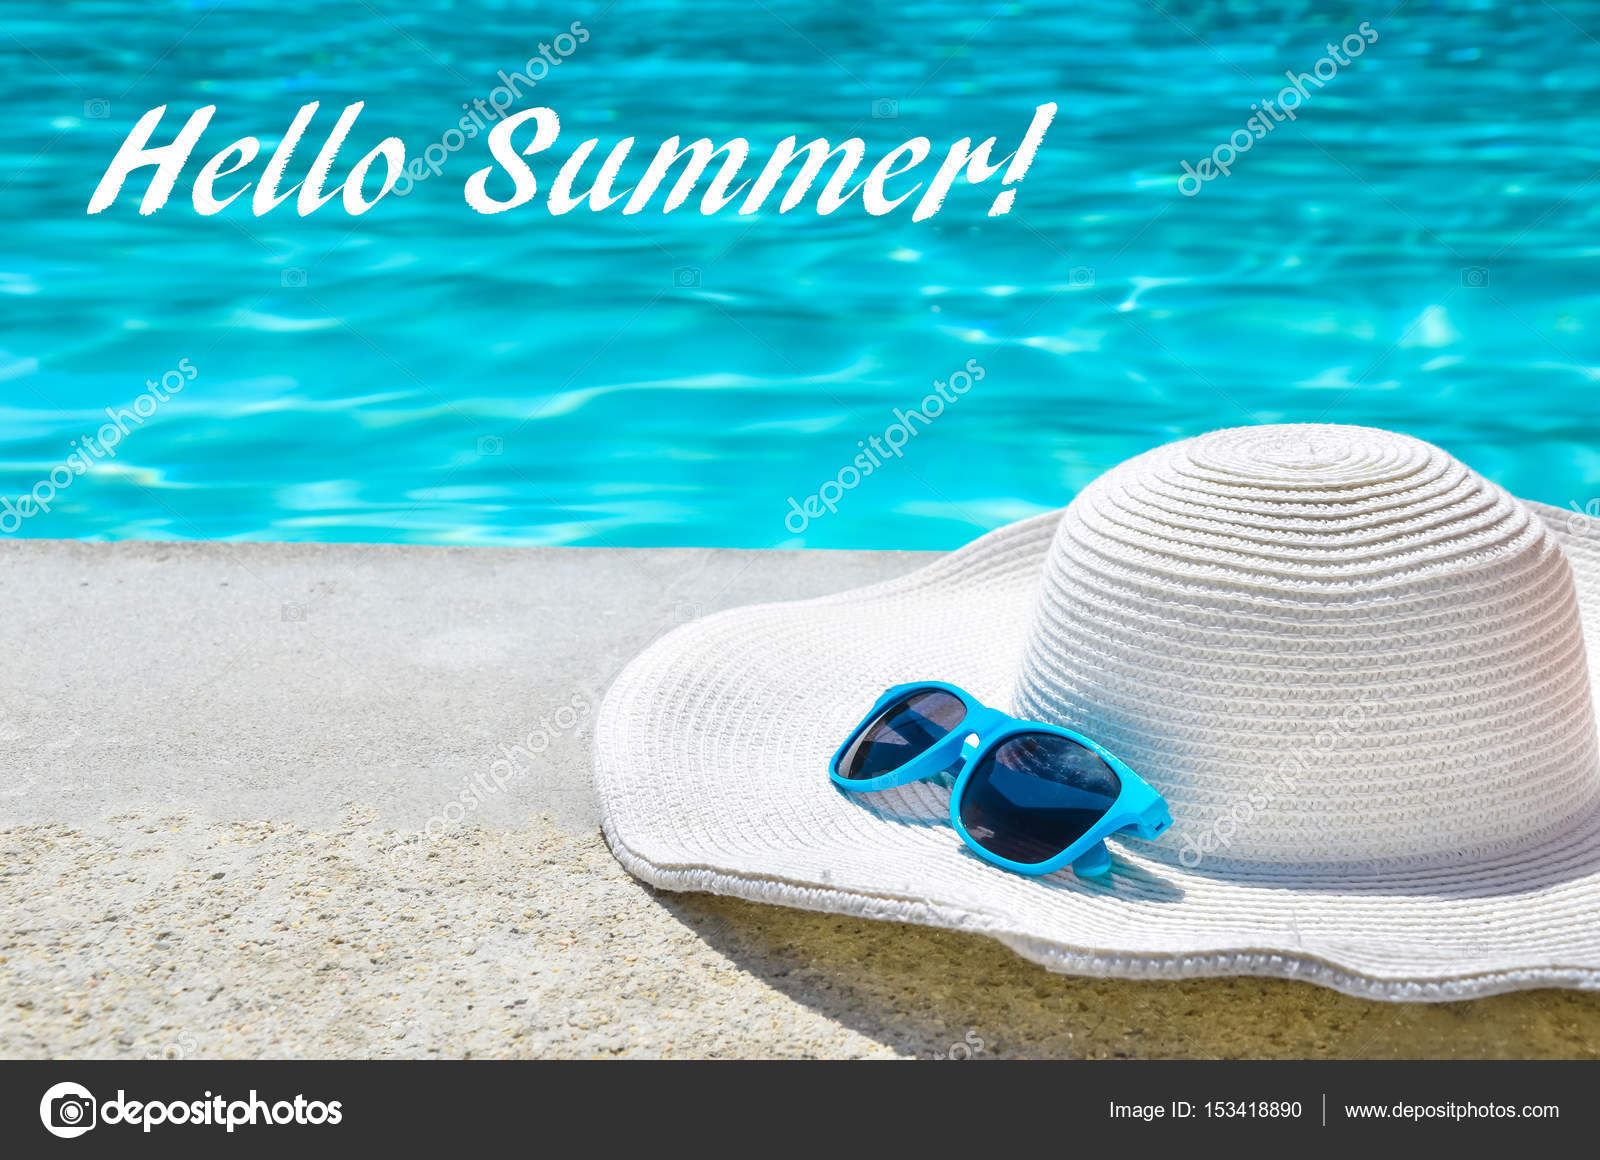 891e8ef35ac Hello Summer background with hat and sunglasses near the pool — Stock Photo